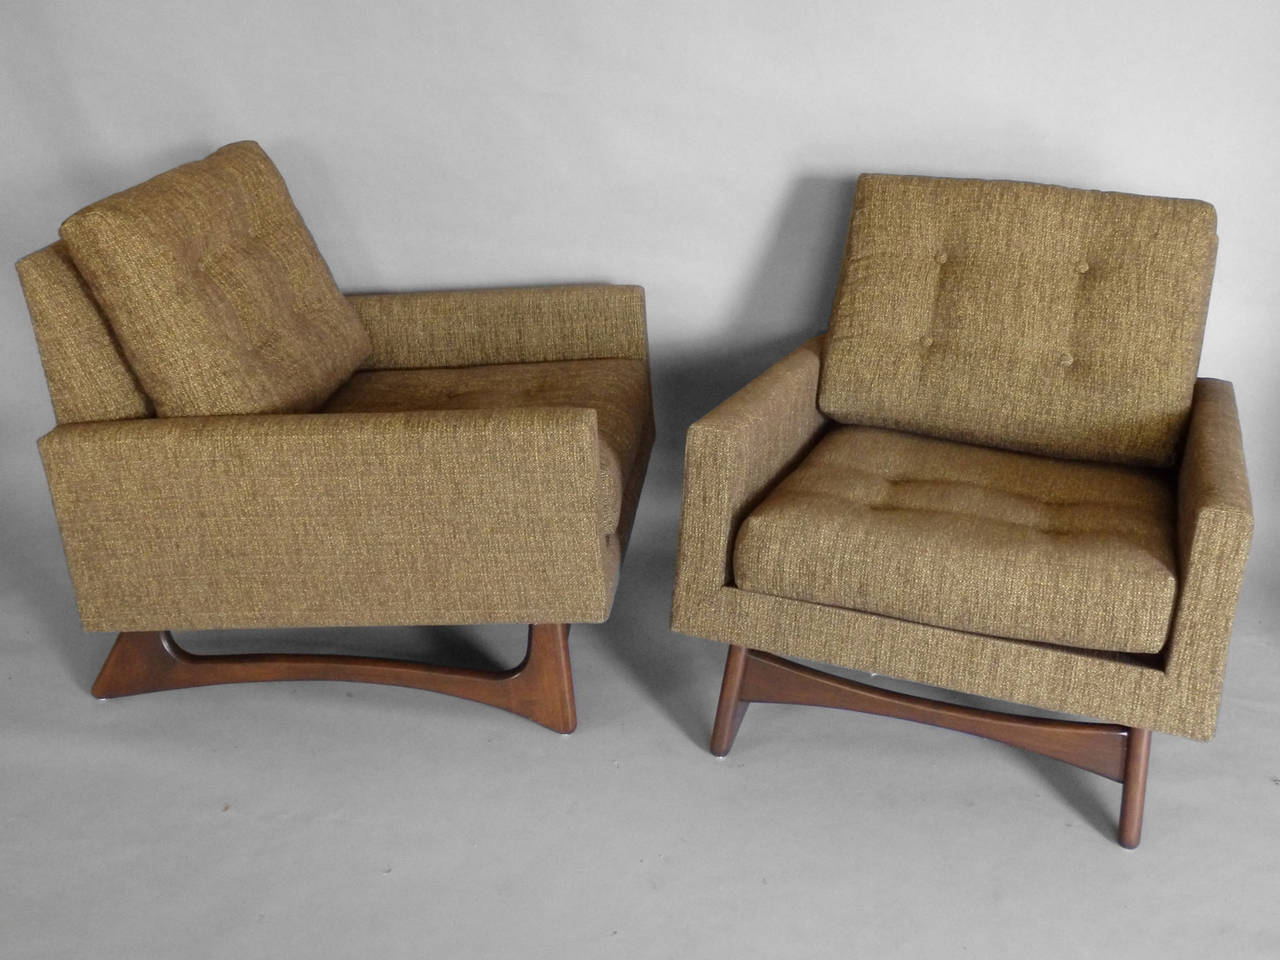 pearsall_lounge_chairs_d5_l.jpeg